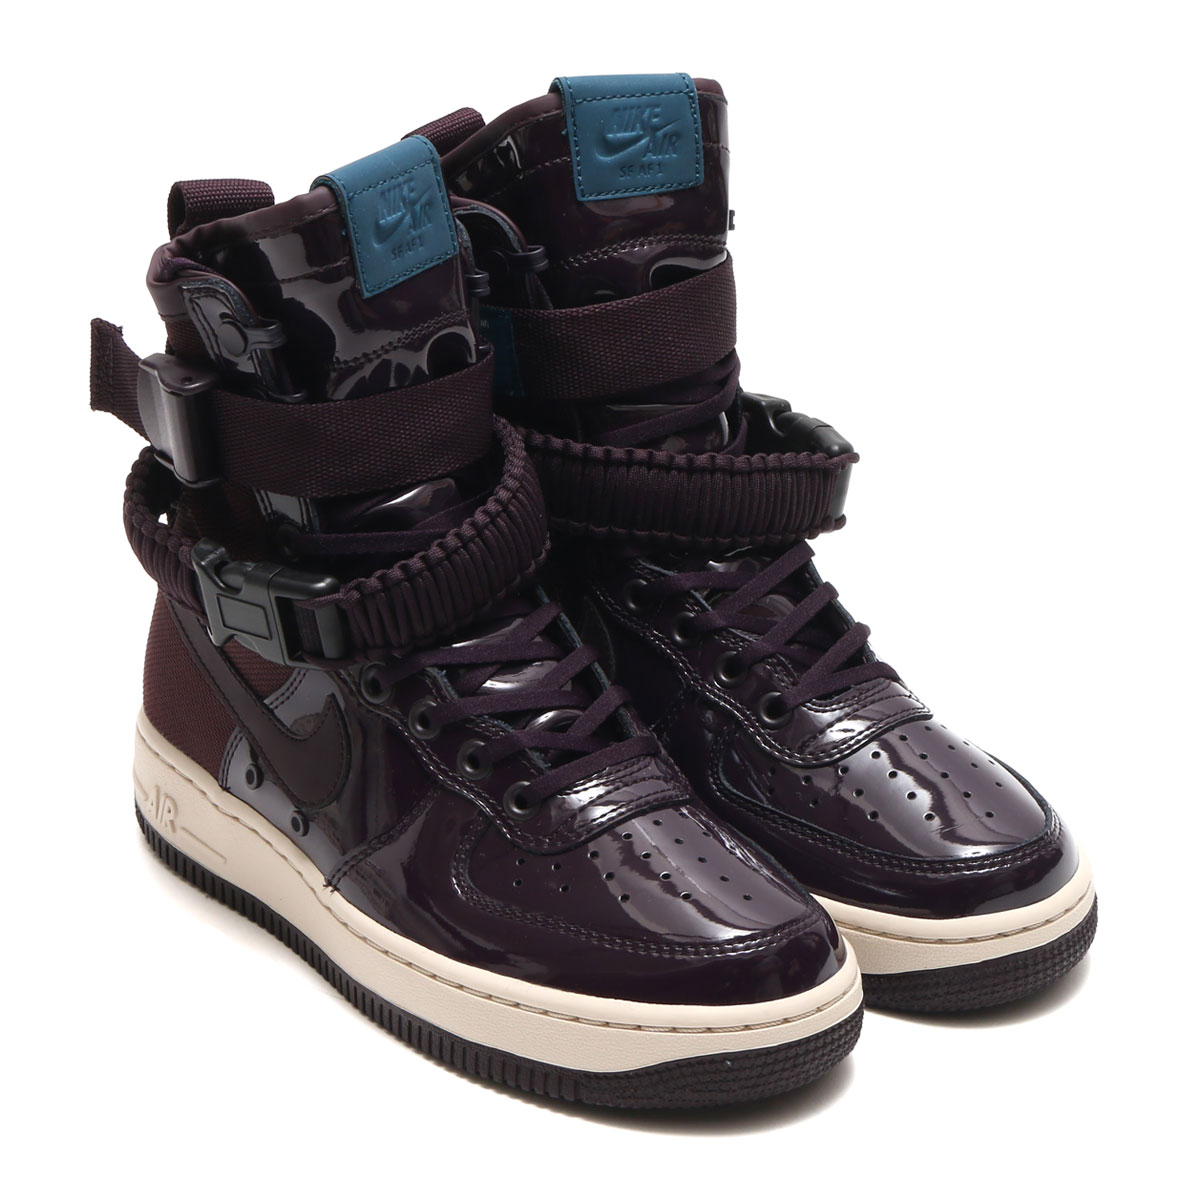 colección apertura local  Limited Time Deals·New Deals Everyday nike sf af1 se prm, OFF 78%,Buy!